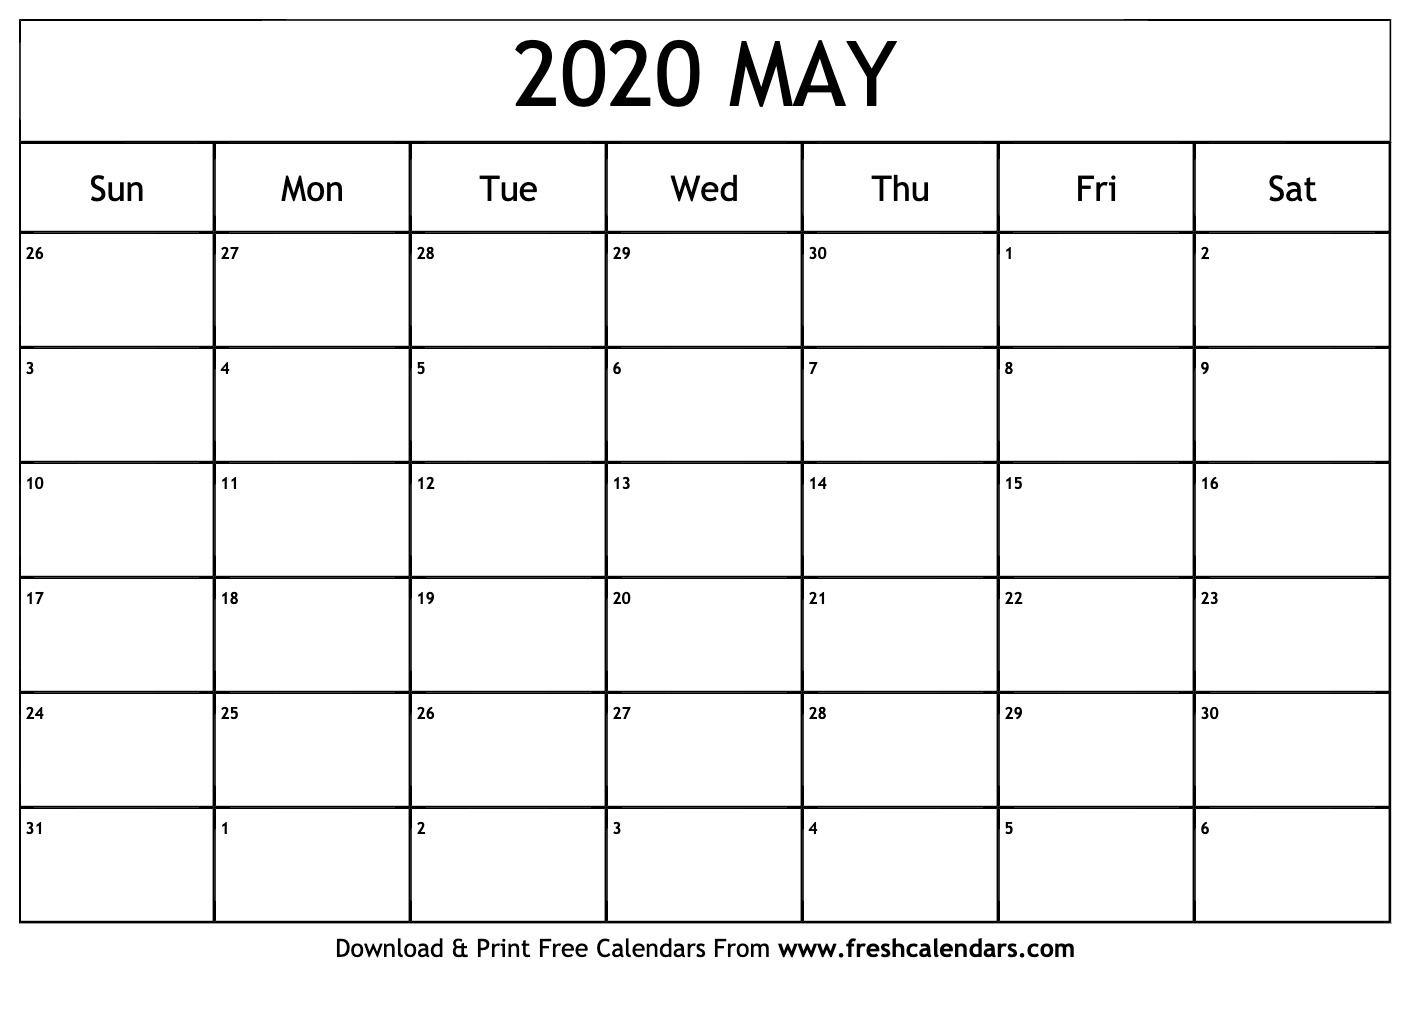 May Printable Calendar 2020.May 2020 Calendar Printable Fresh Calendars